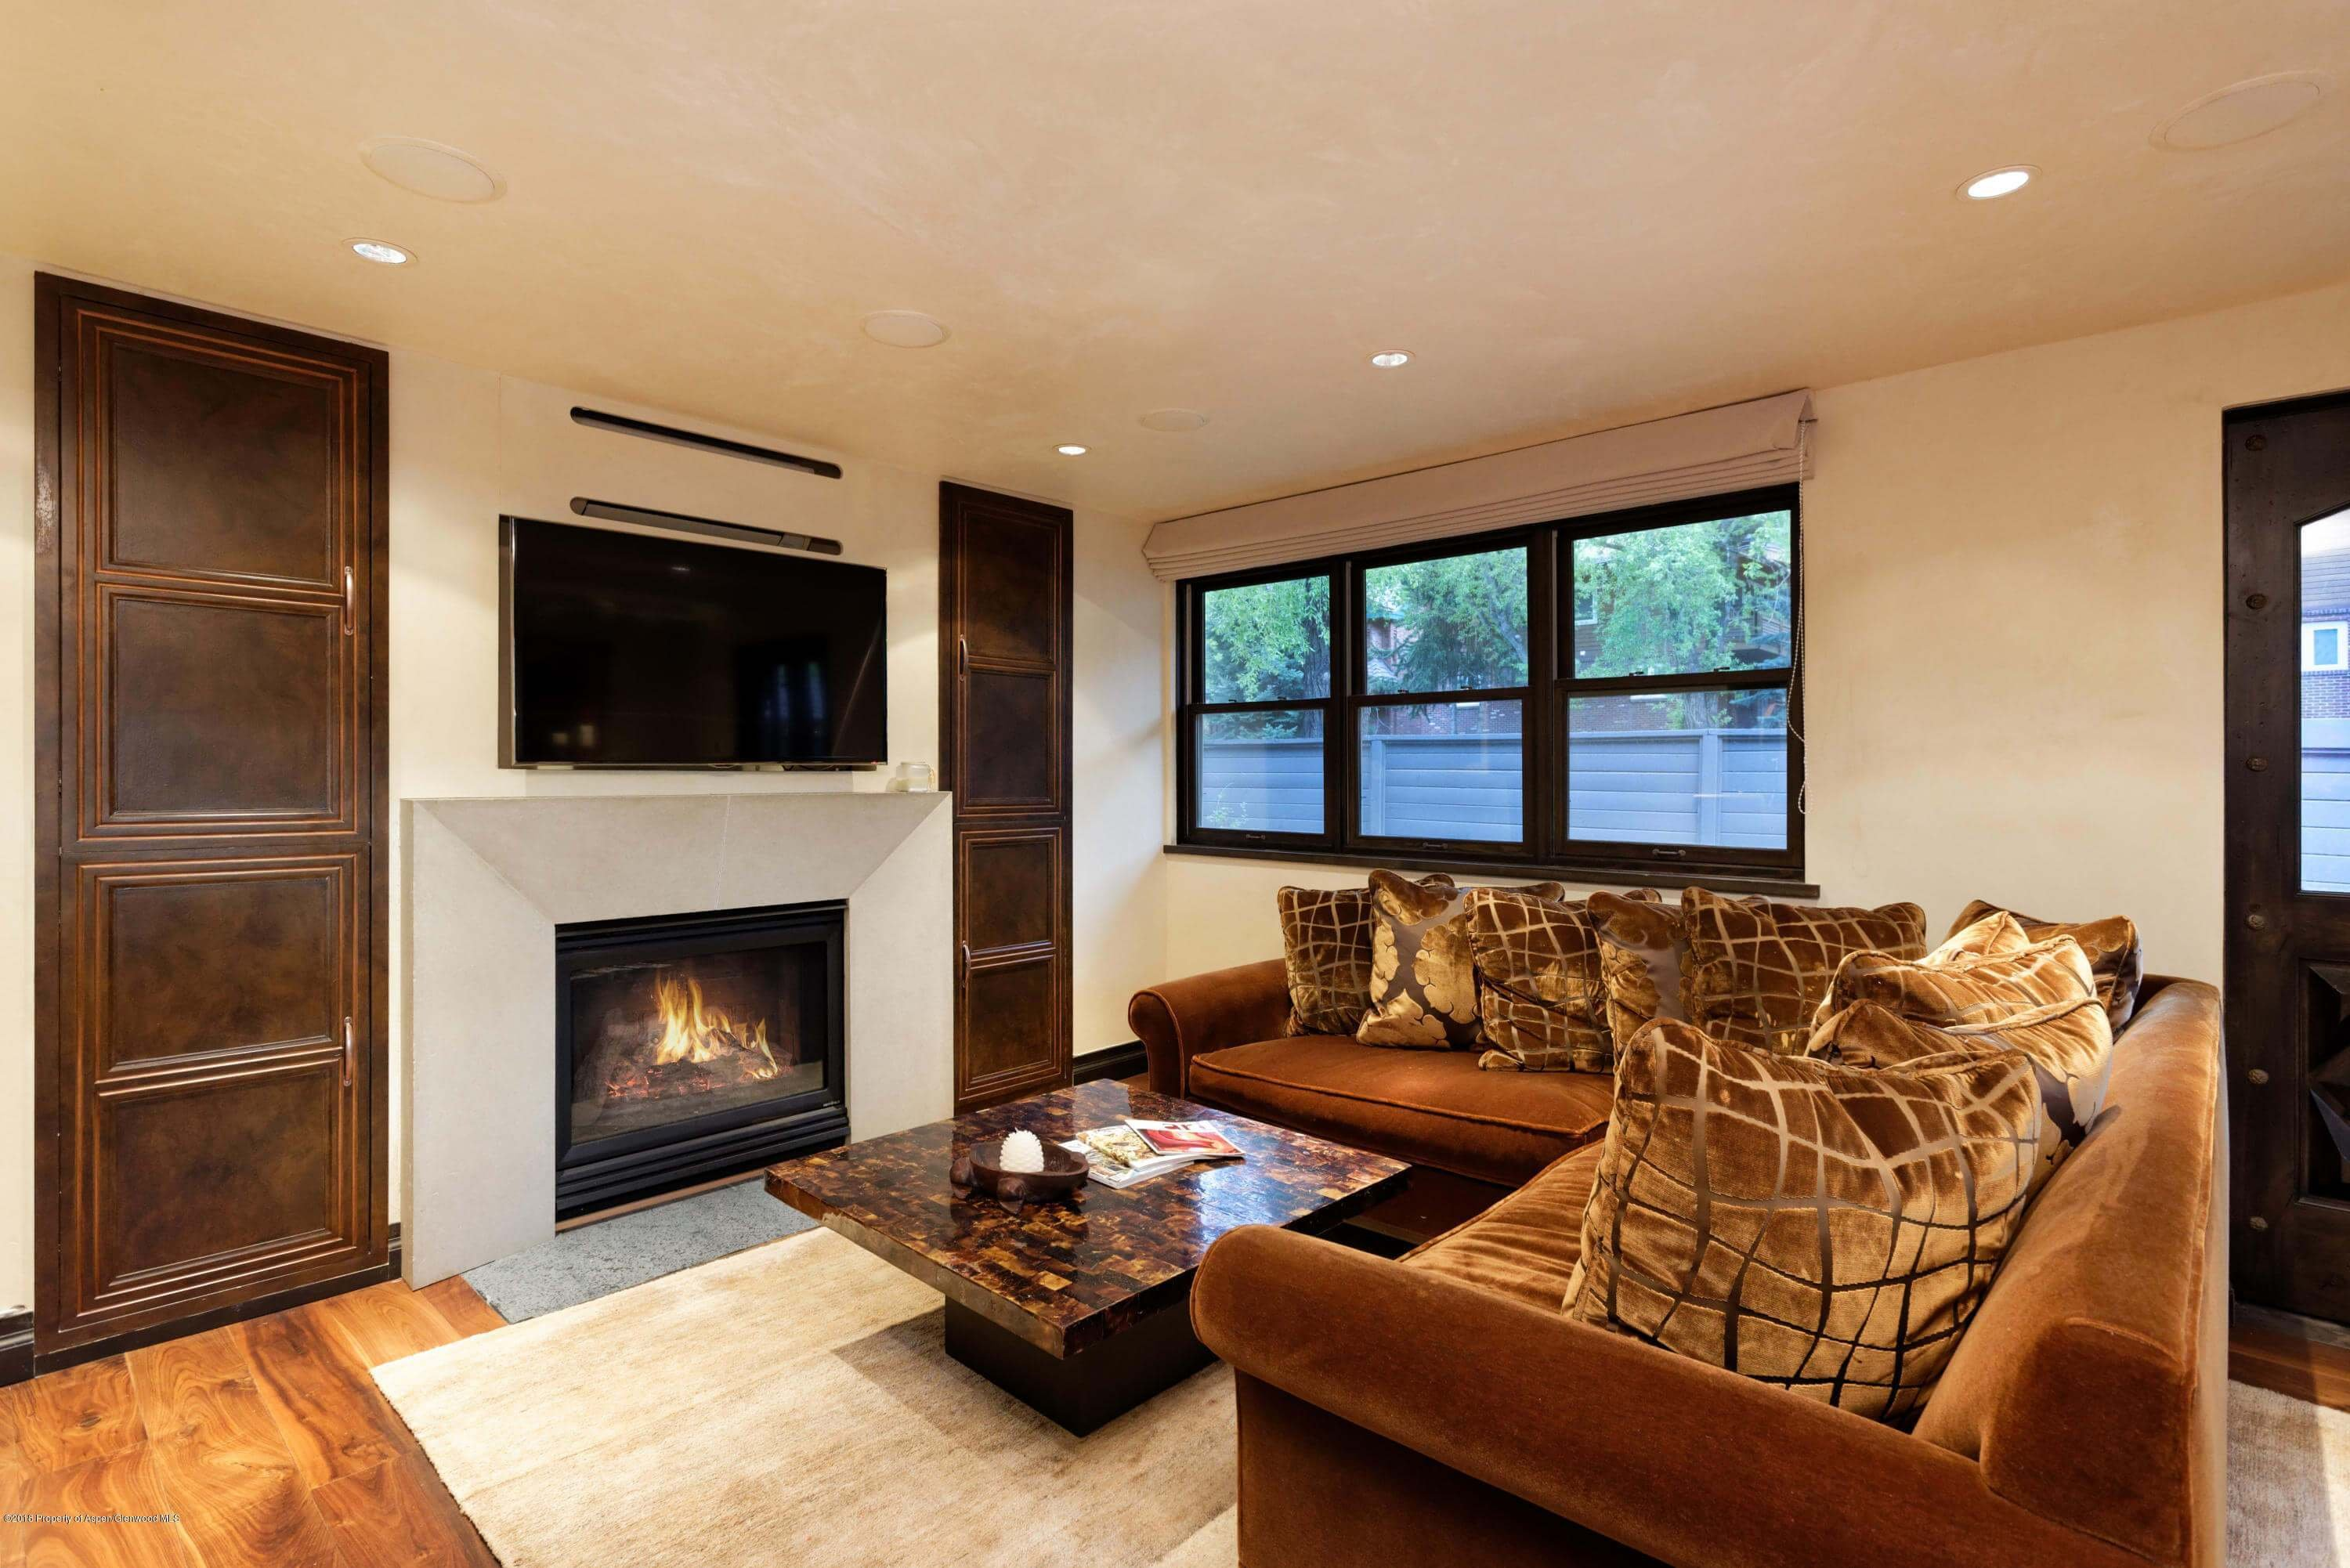 802 E Cooper Ave #1, Aspen, CO: Bought 3 Bdrm Condo for $1.925M/$899 SF; Sold 6+ Yrs later at $3.5M/$1,636 SF Thumbnail